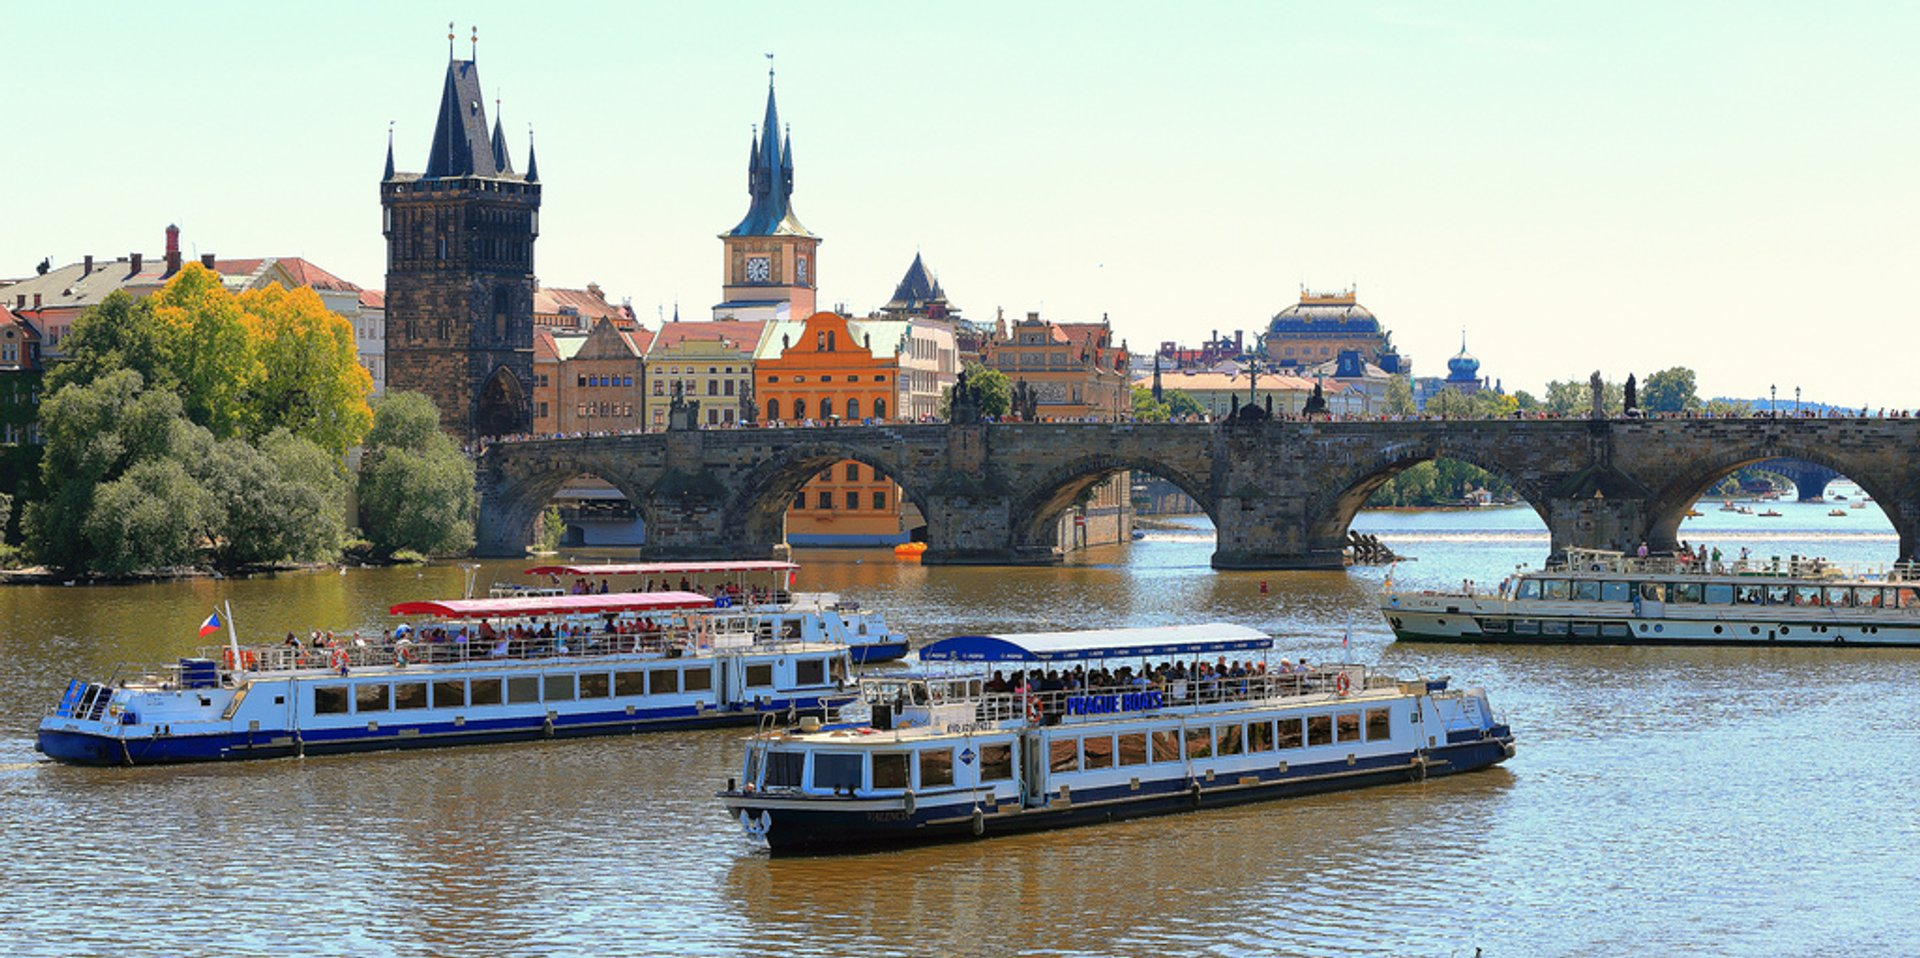 Summertime River Cruise in Prague - Best Time